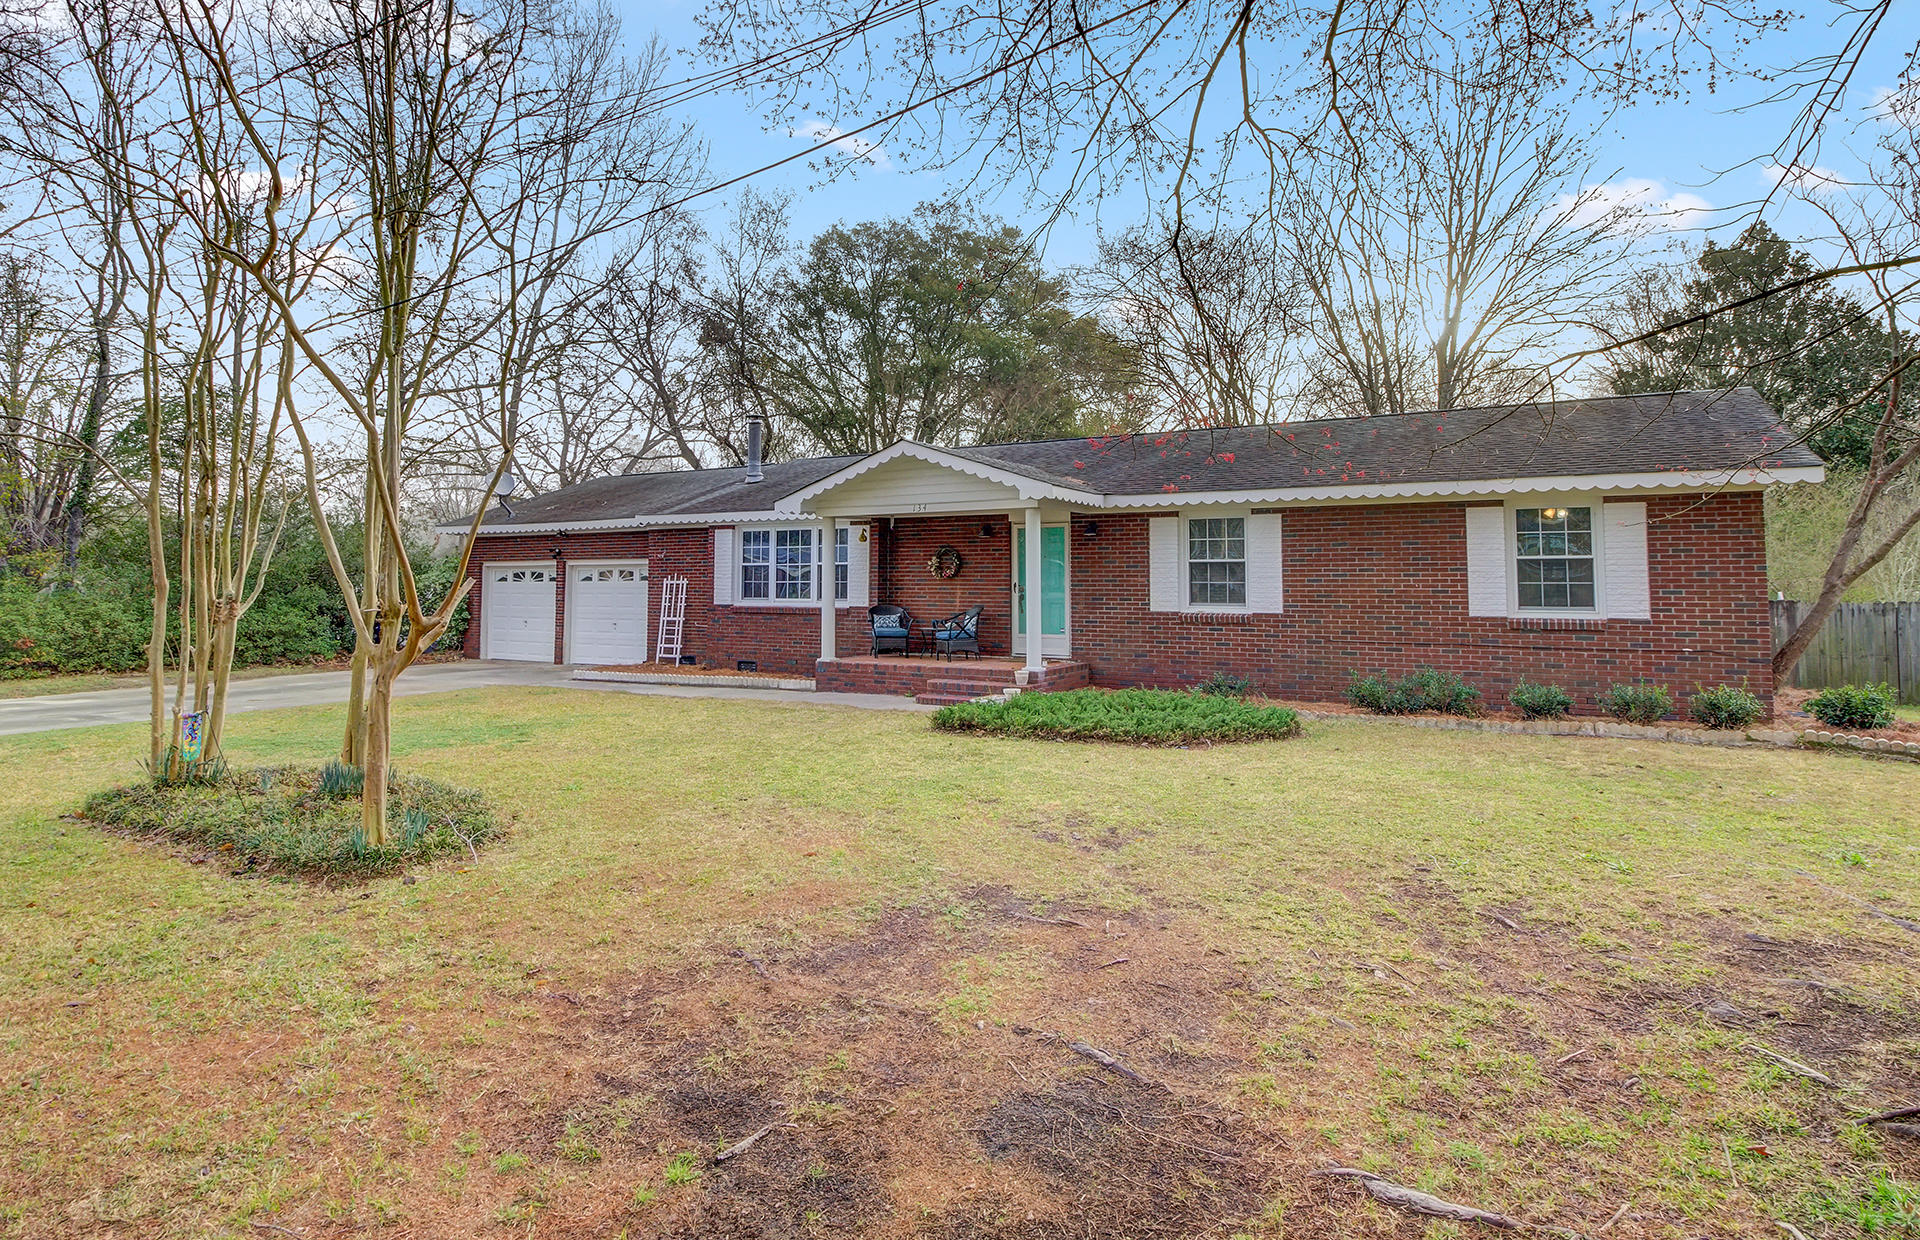 Tranquil Acres Homes For Sale - 134 Tranquil, Ladson, SC - 18